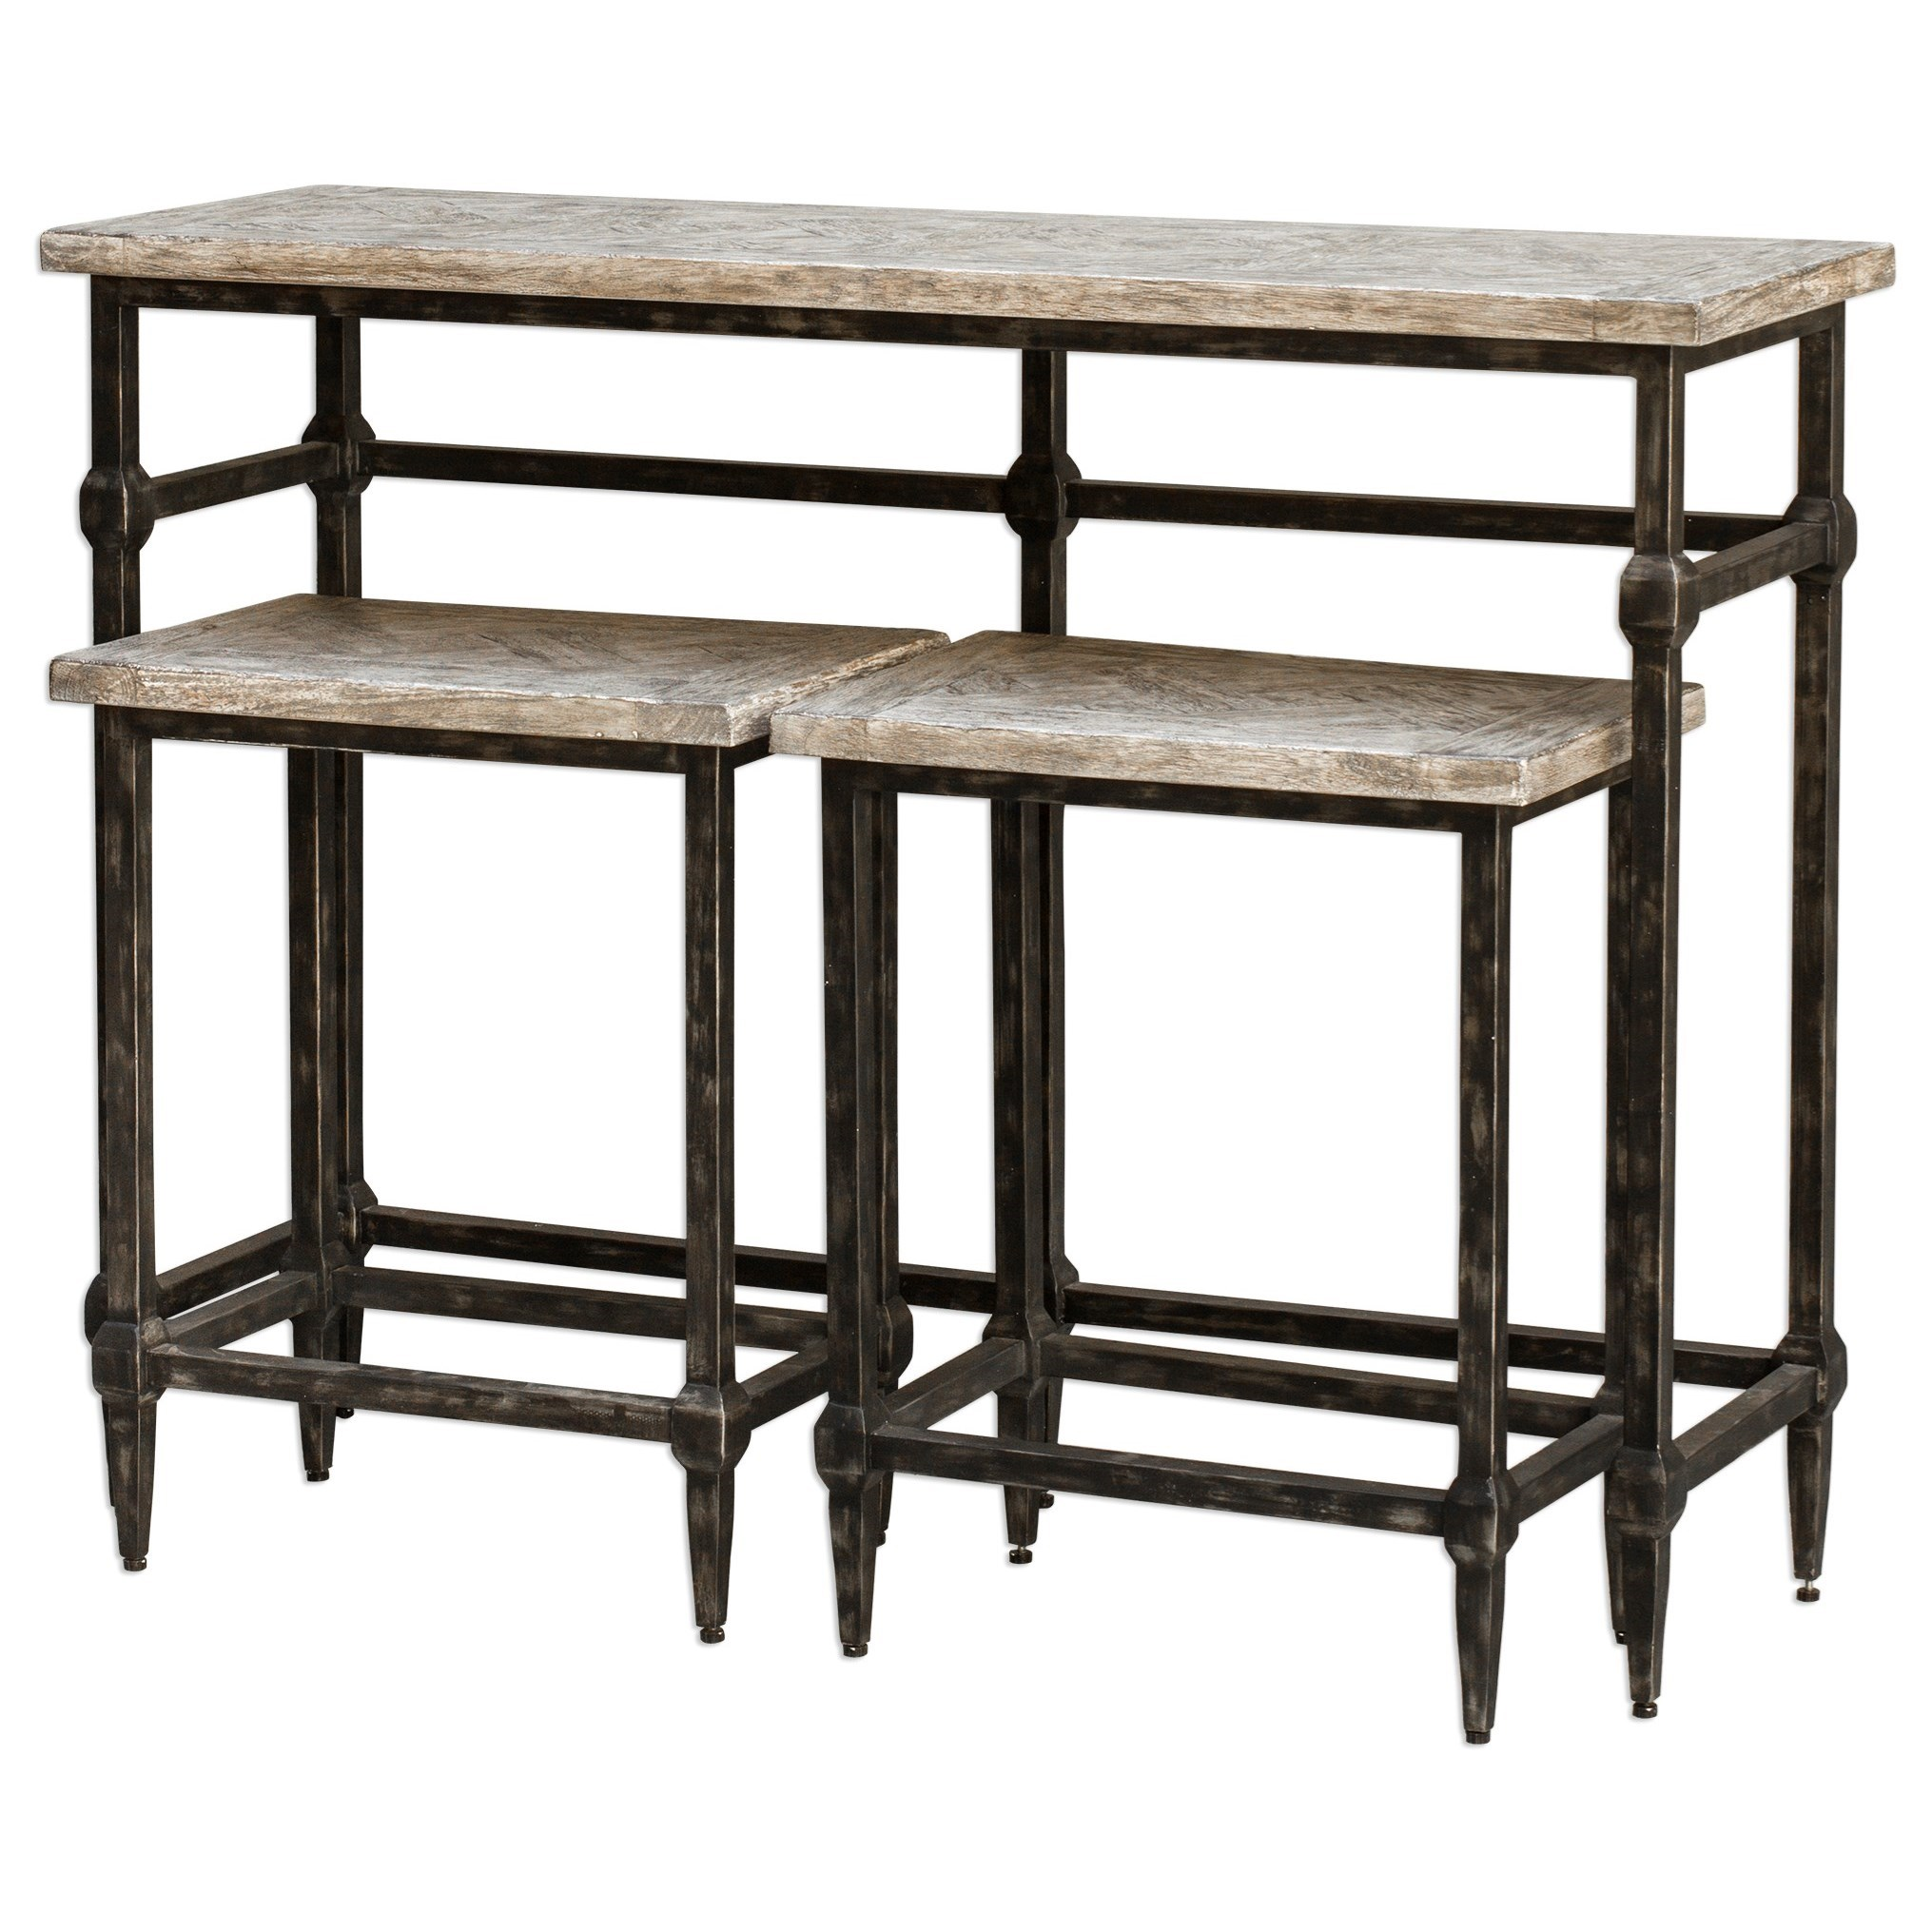 Accent Furniture Tameron Bistro Set S/3 by Uttermost at O'Dunk & O'Bright Furniture